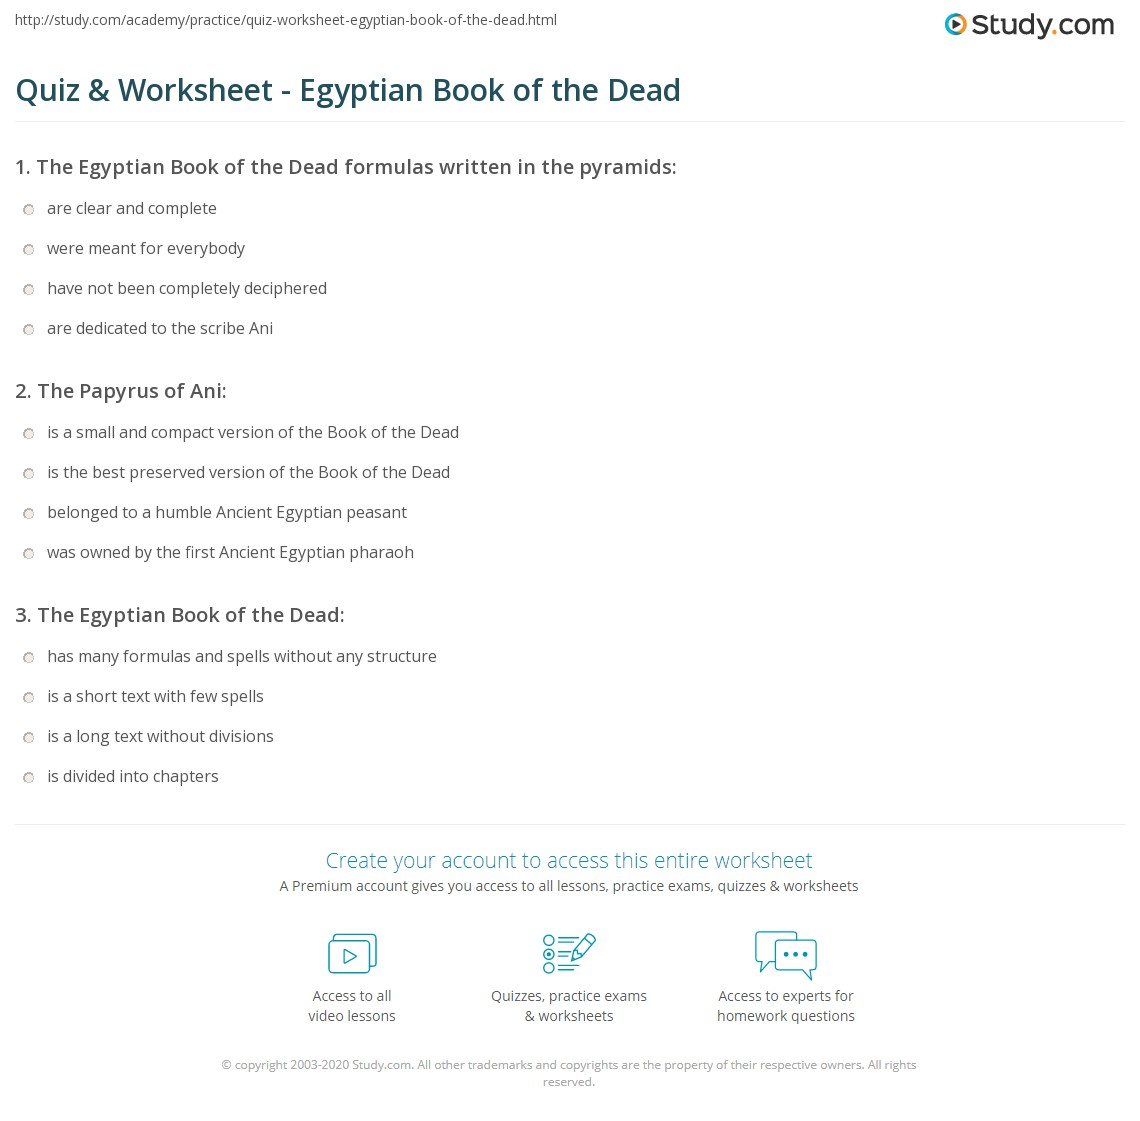 Quiz & Worksheet - Egyptian Book of the Dead | Study com